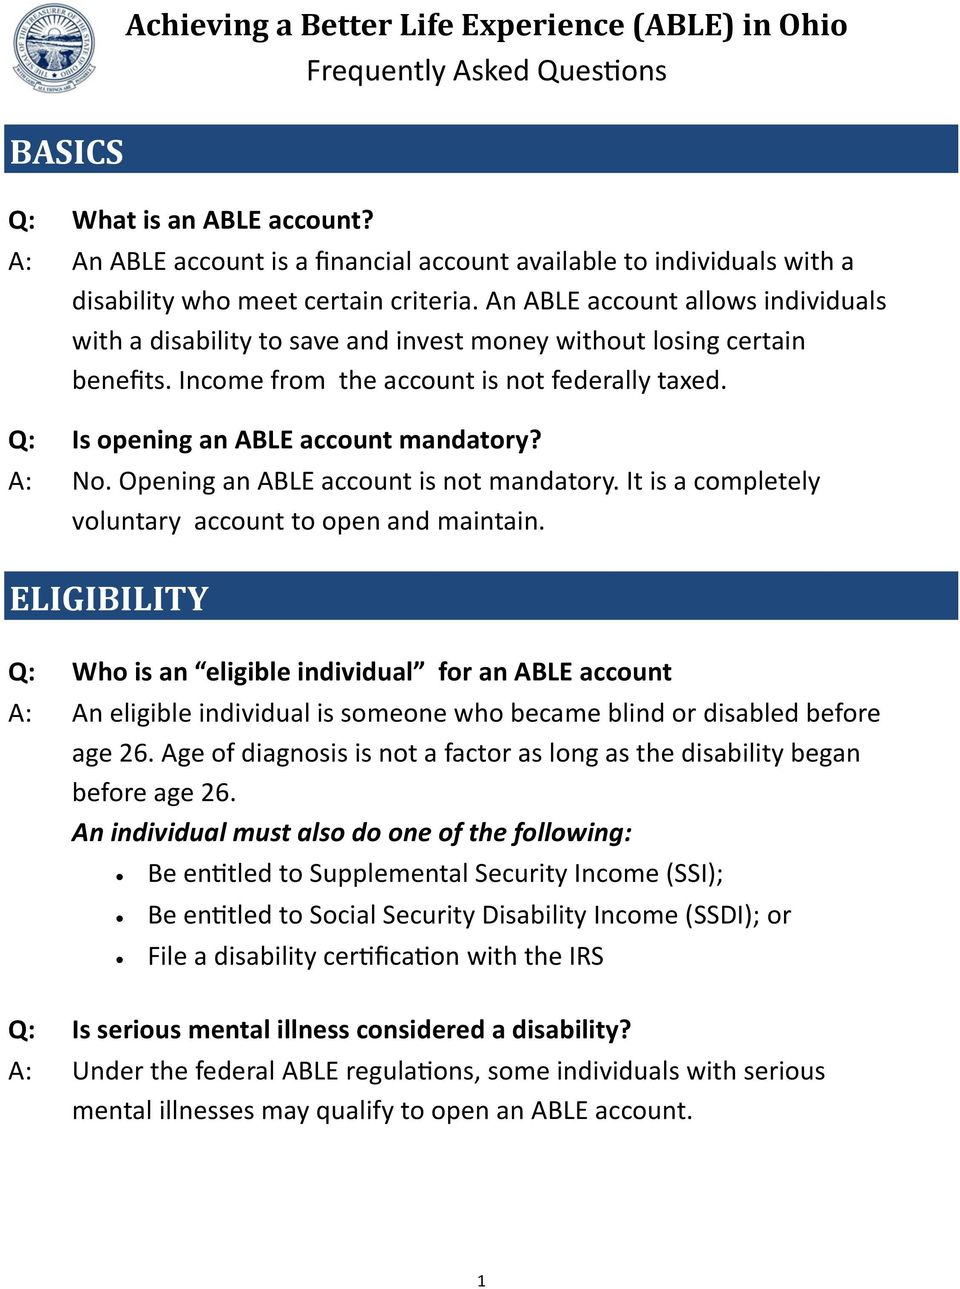 An ABLE account allows individuals with a disability to save and invest money without losing certain benefits. Income from the account is not federally taxed. Q: Is opening an ABLE account mandatory?